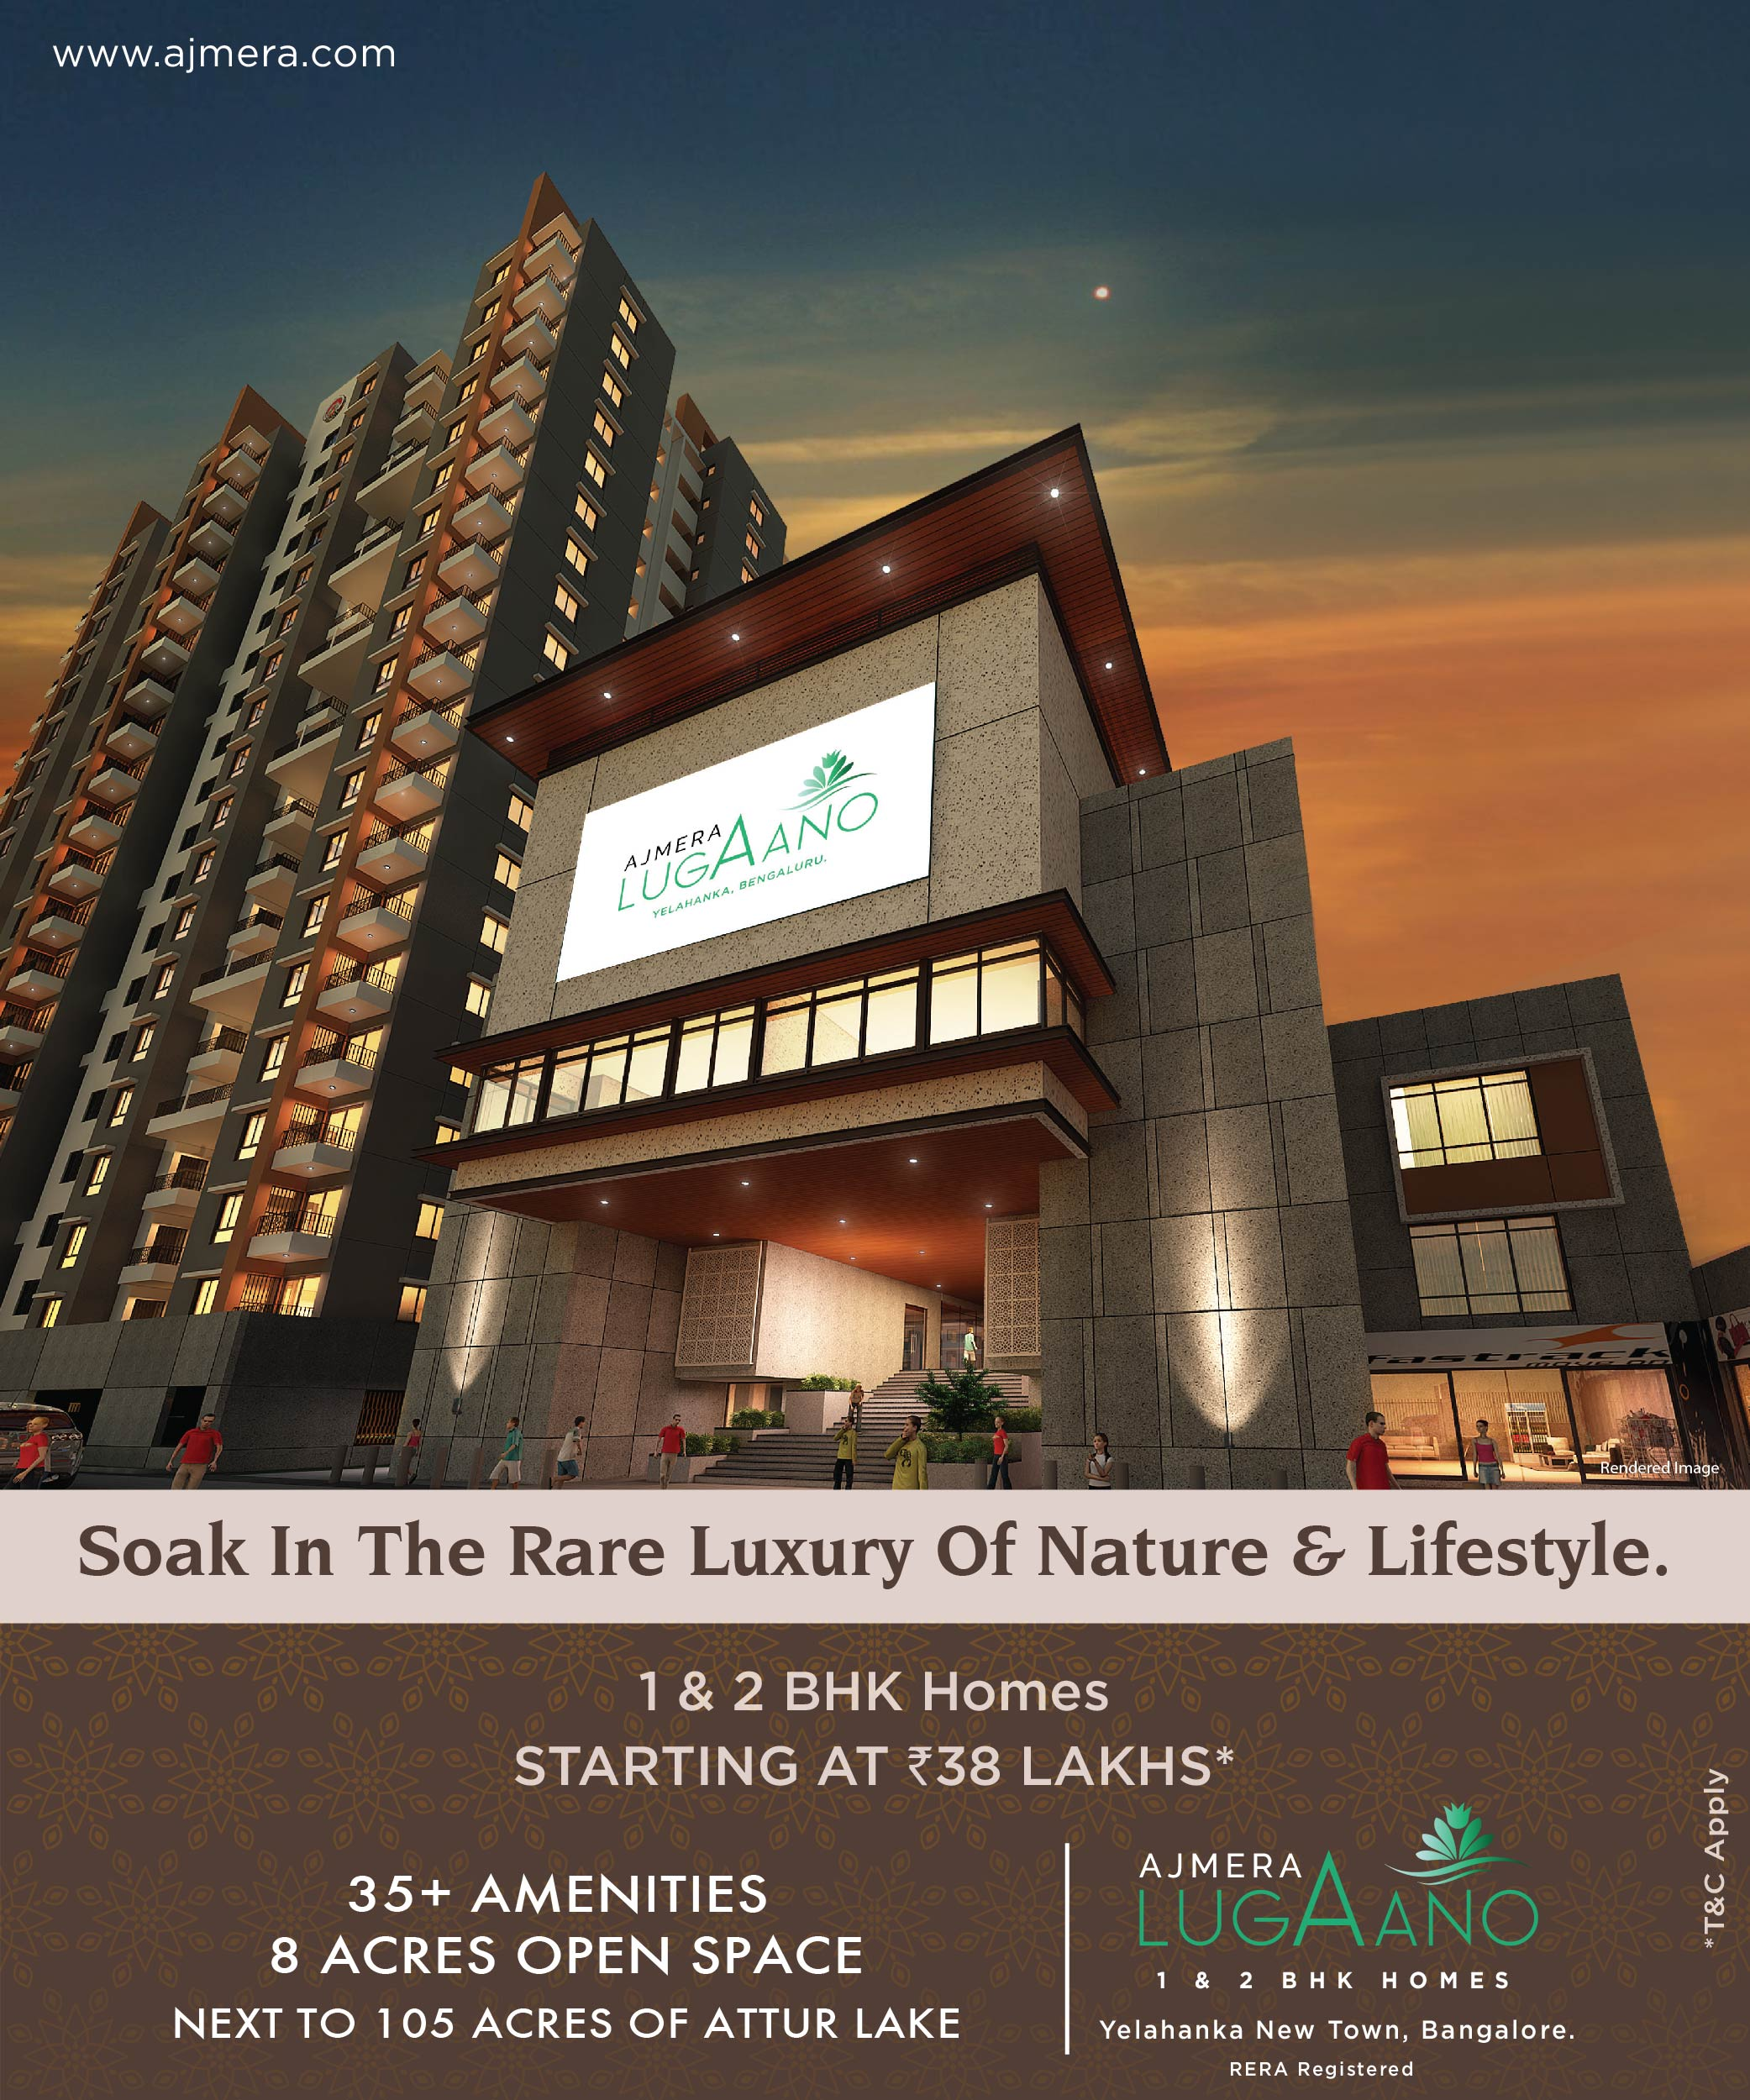 Ajmera Lugaano -Affordable 1&2 BHK in Yelahanka - 2